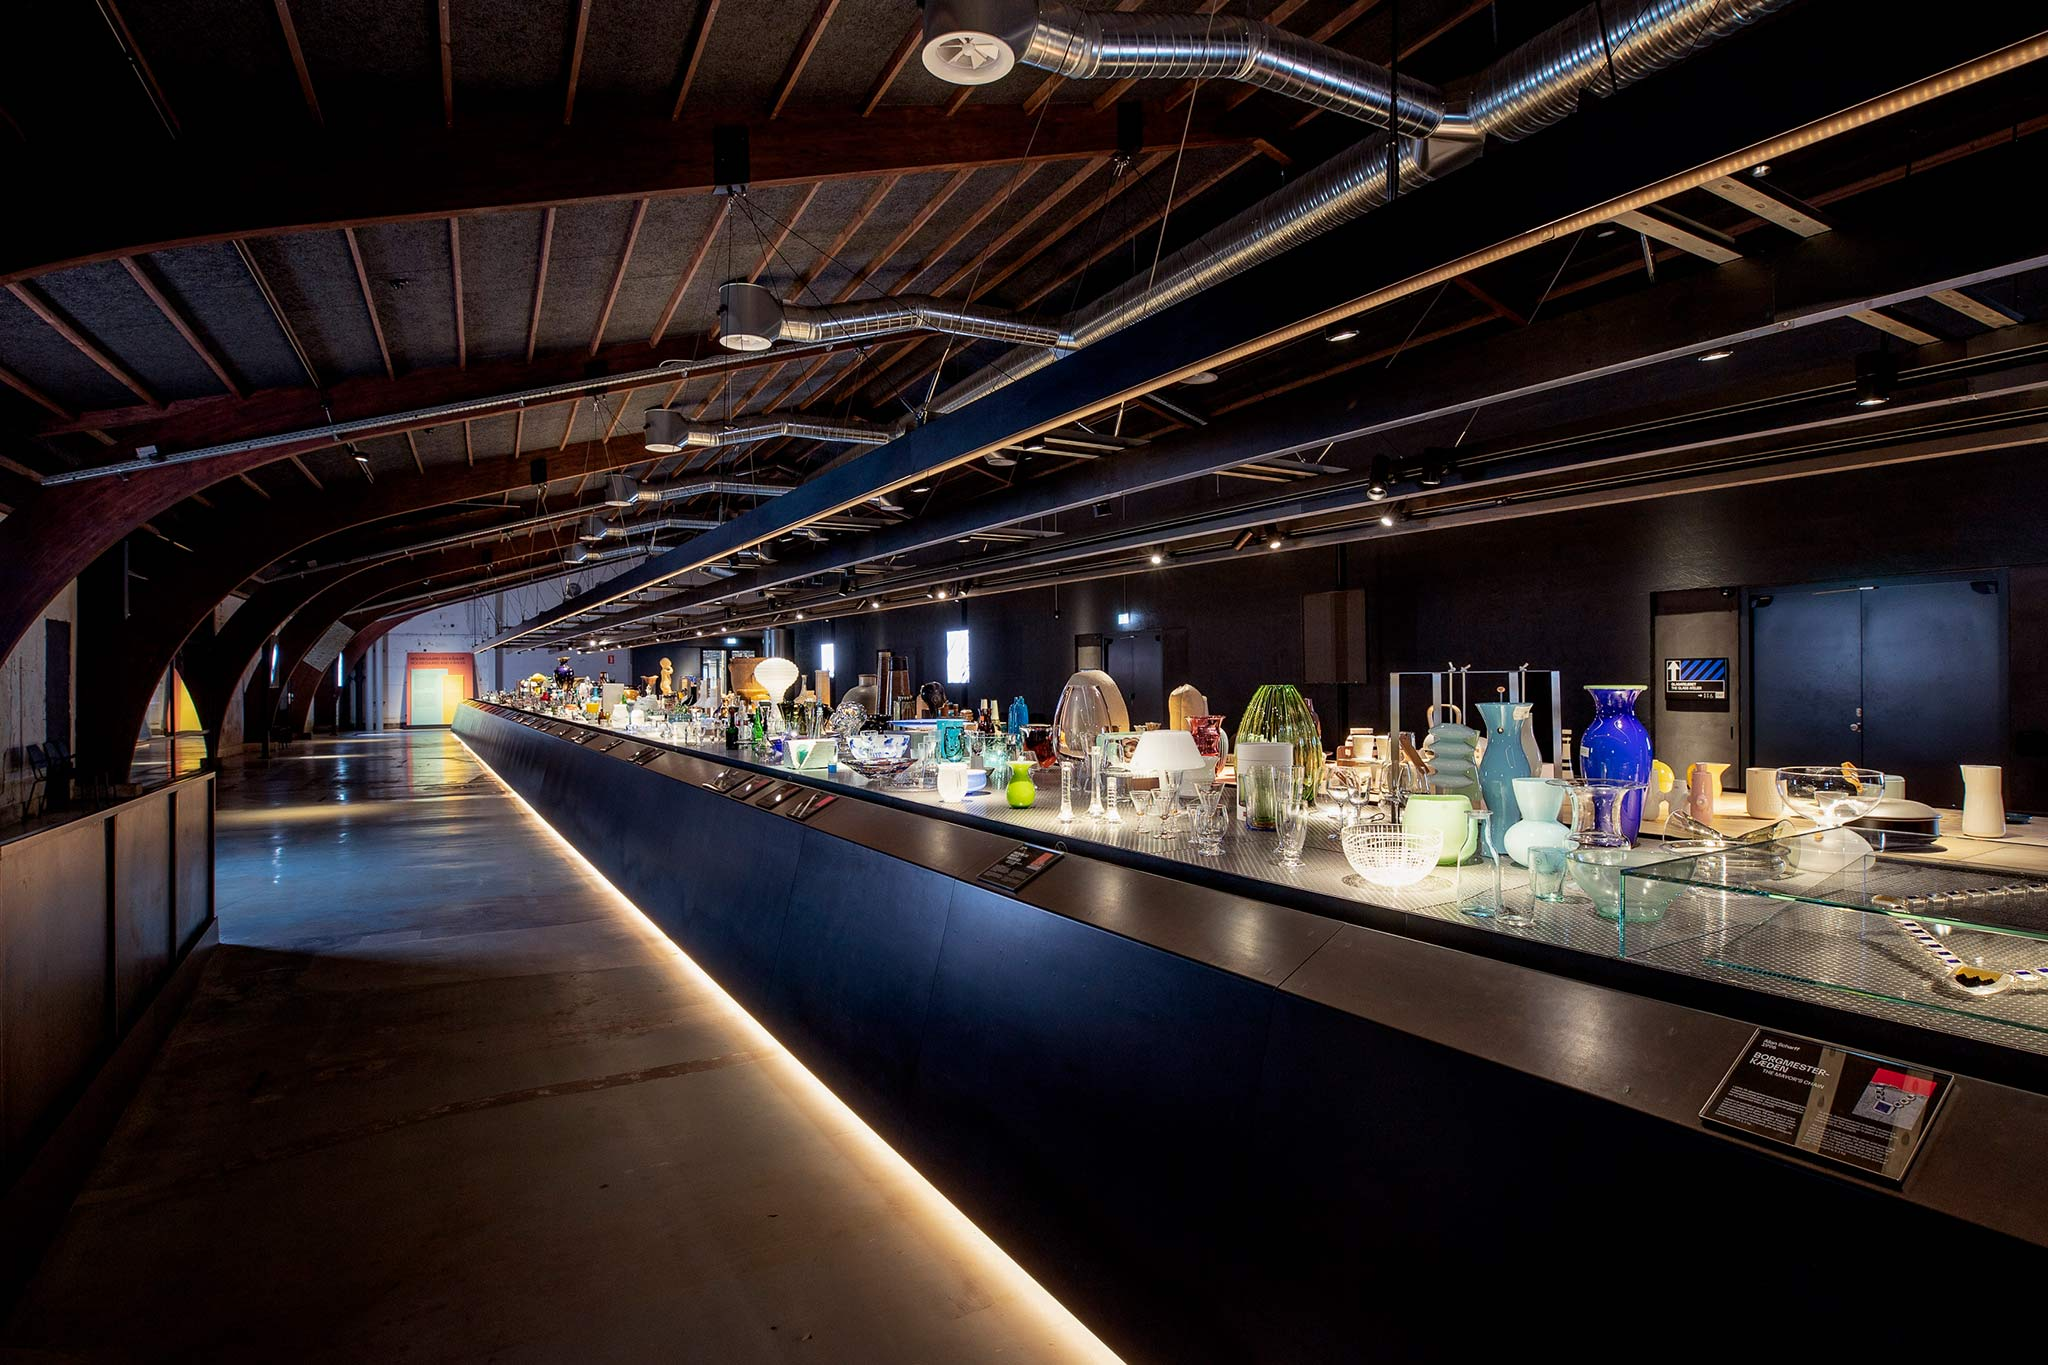 Lighting Design for museums